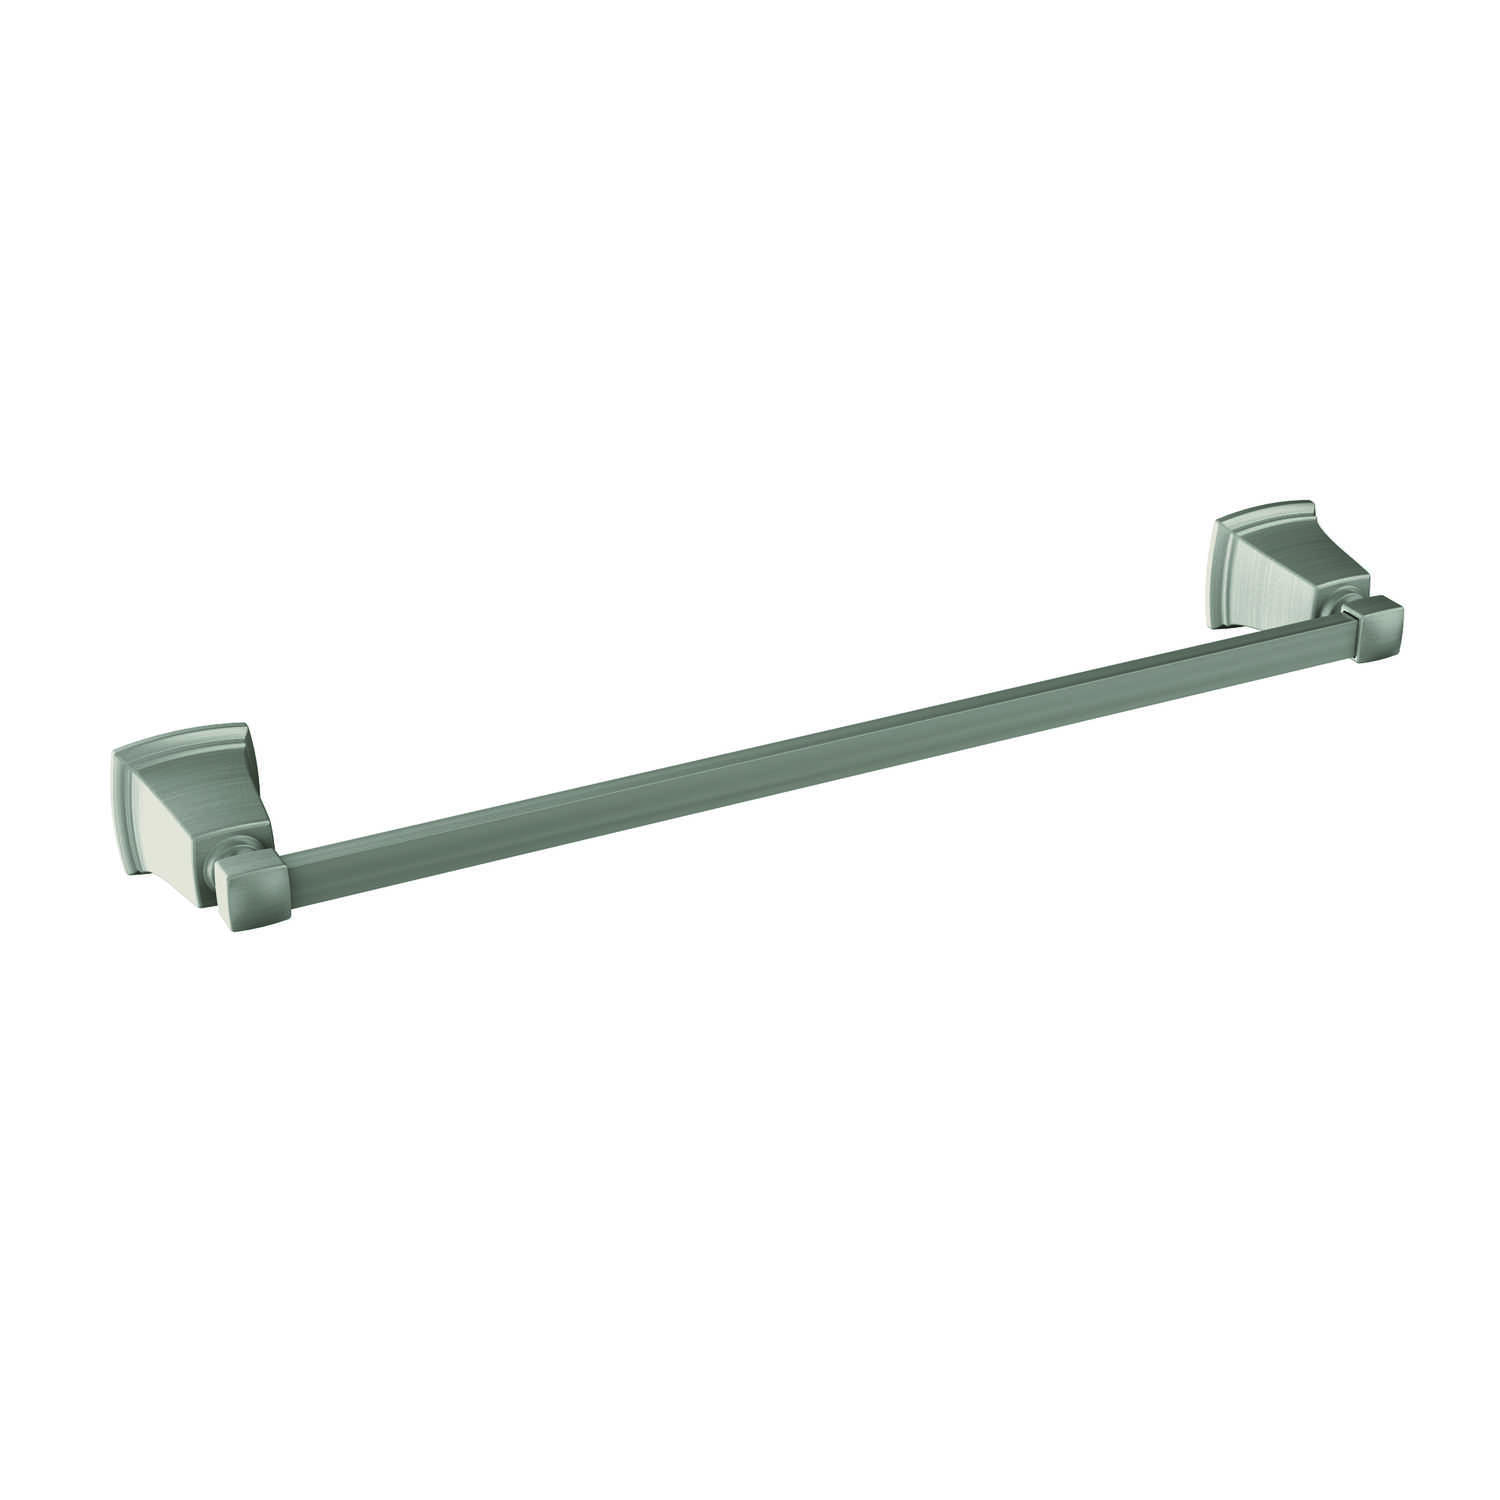 Moen  Boardwalk  Brushed Nickel  Towel Bar  18 in. L Metal